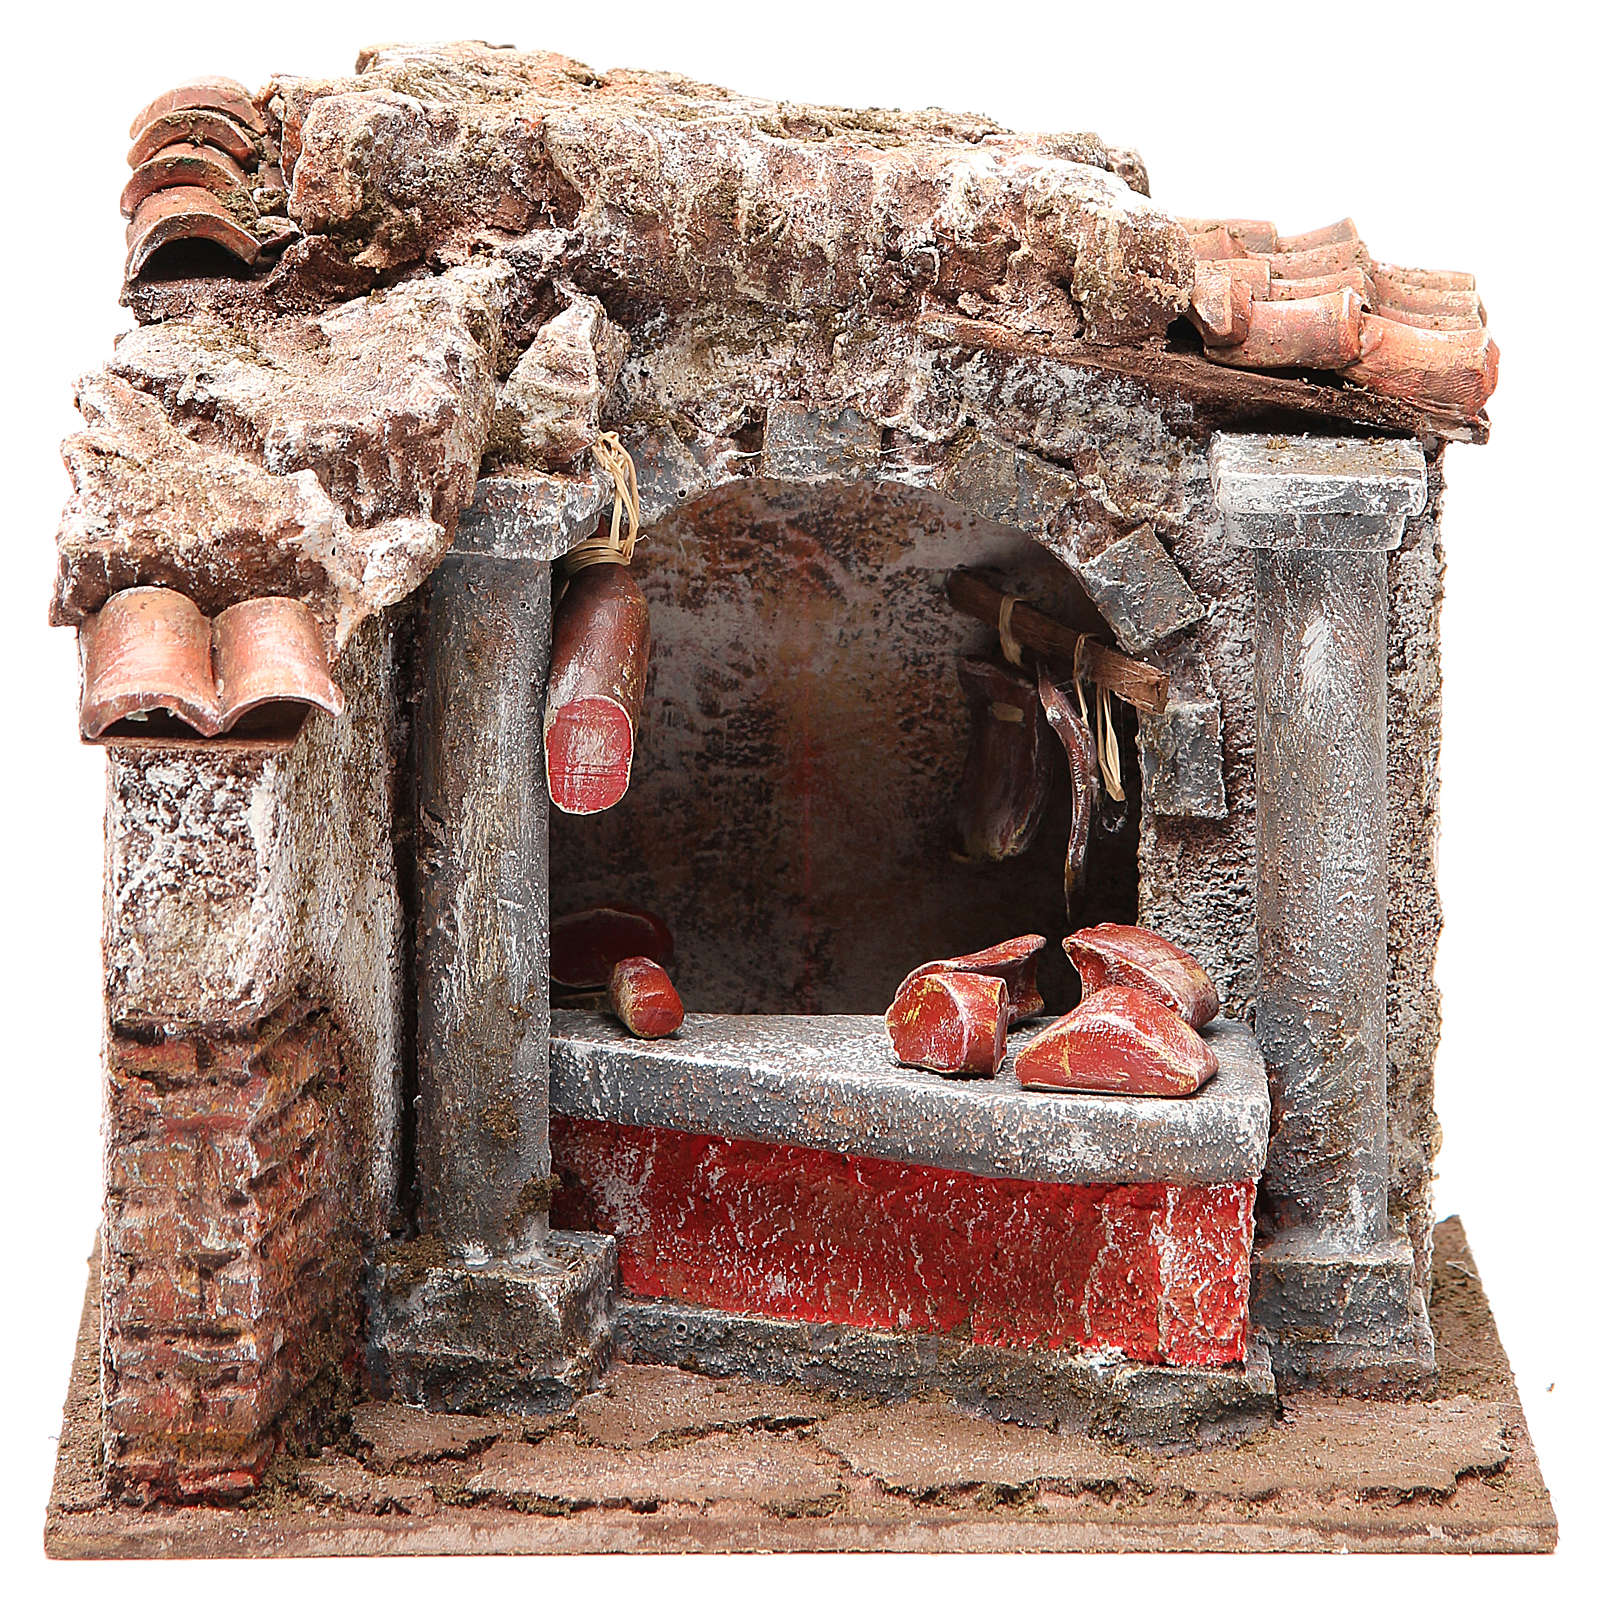 Cured meats and meats shop for nativity 10cm 4